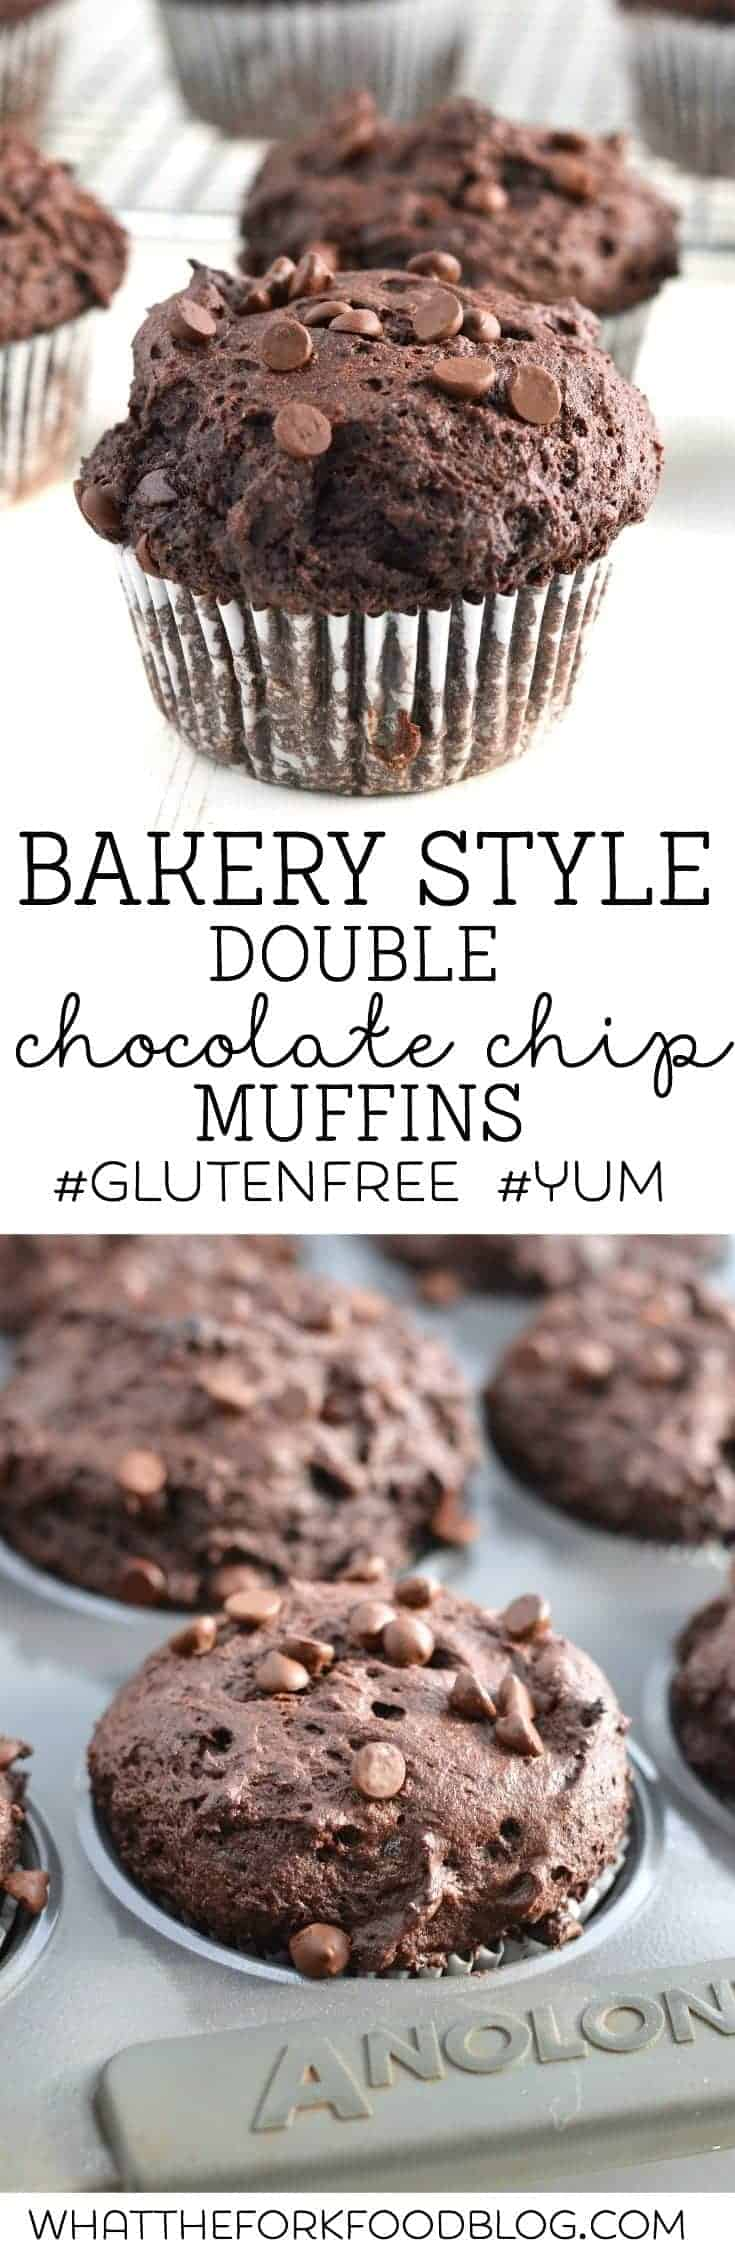 Gluten Free Bakery Style Double Chocolate Chip Muffins from What The Fork Food Blog   @WhatTheForkBlog   whattheforkfoodblog.com